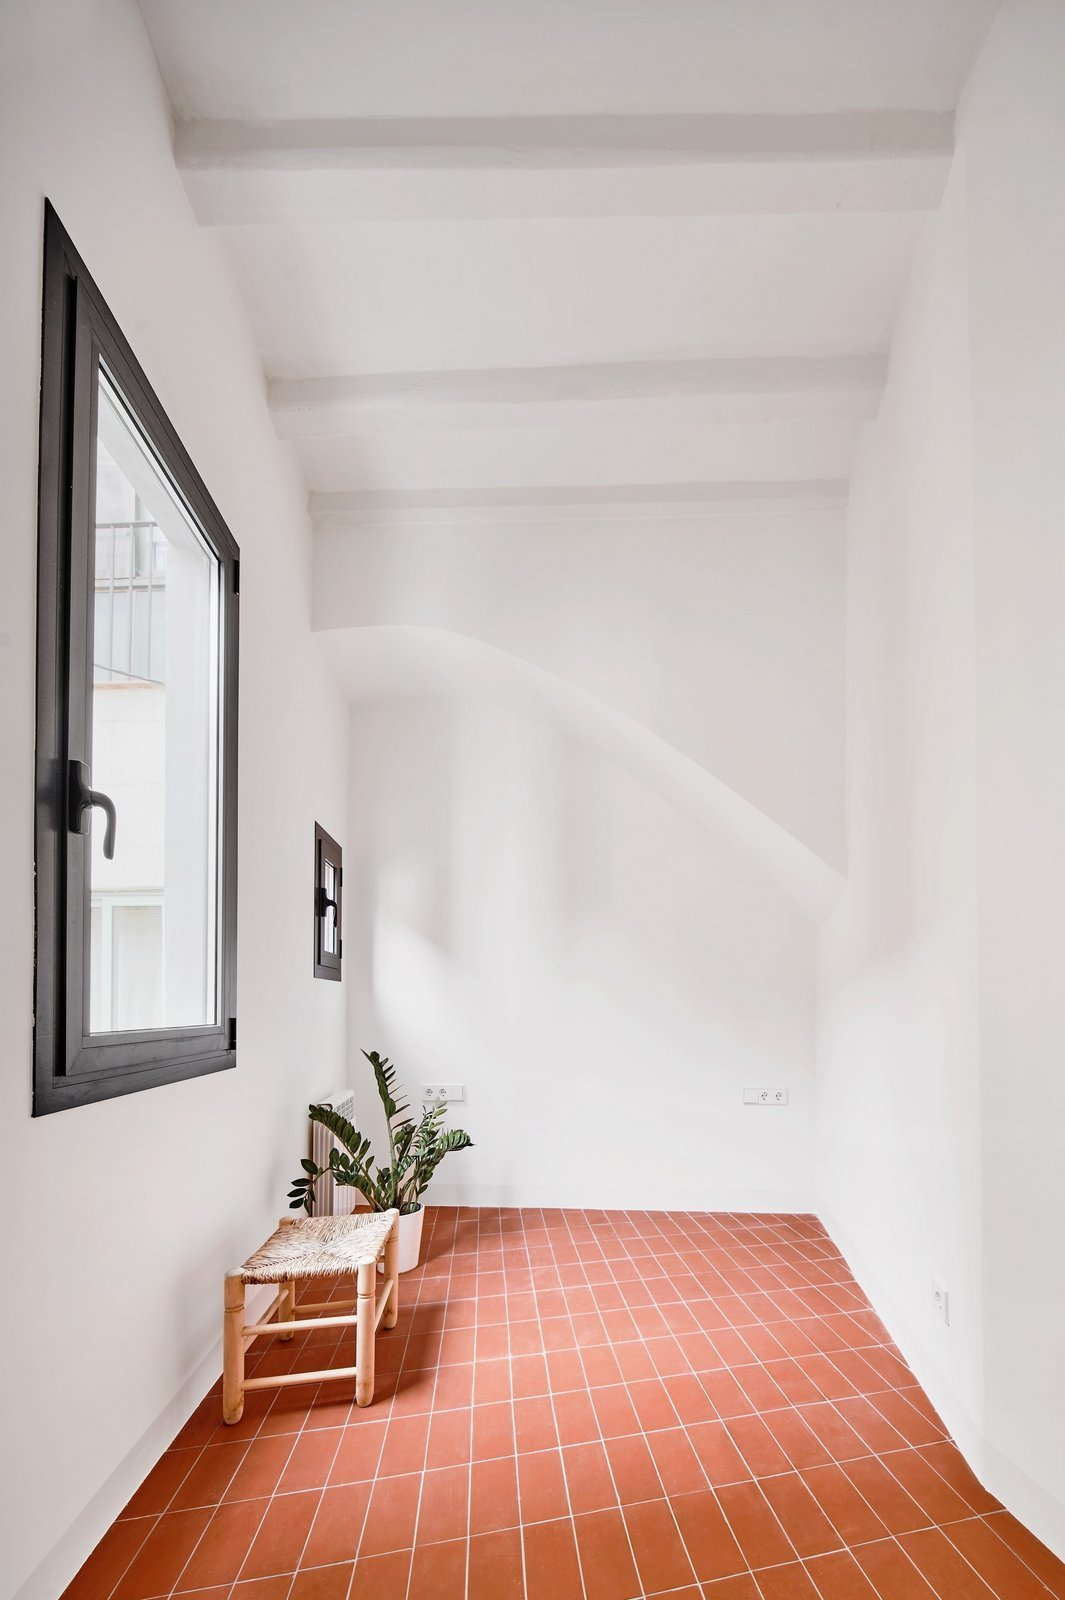 Hallway and Terra-cotta Tile Floor  Photo 15 of 17 in Picture Windows and Sliding Doors Work Magic in This Cozy Barcelona Home from The Akari House